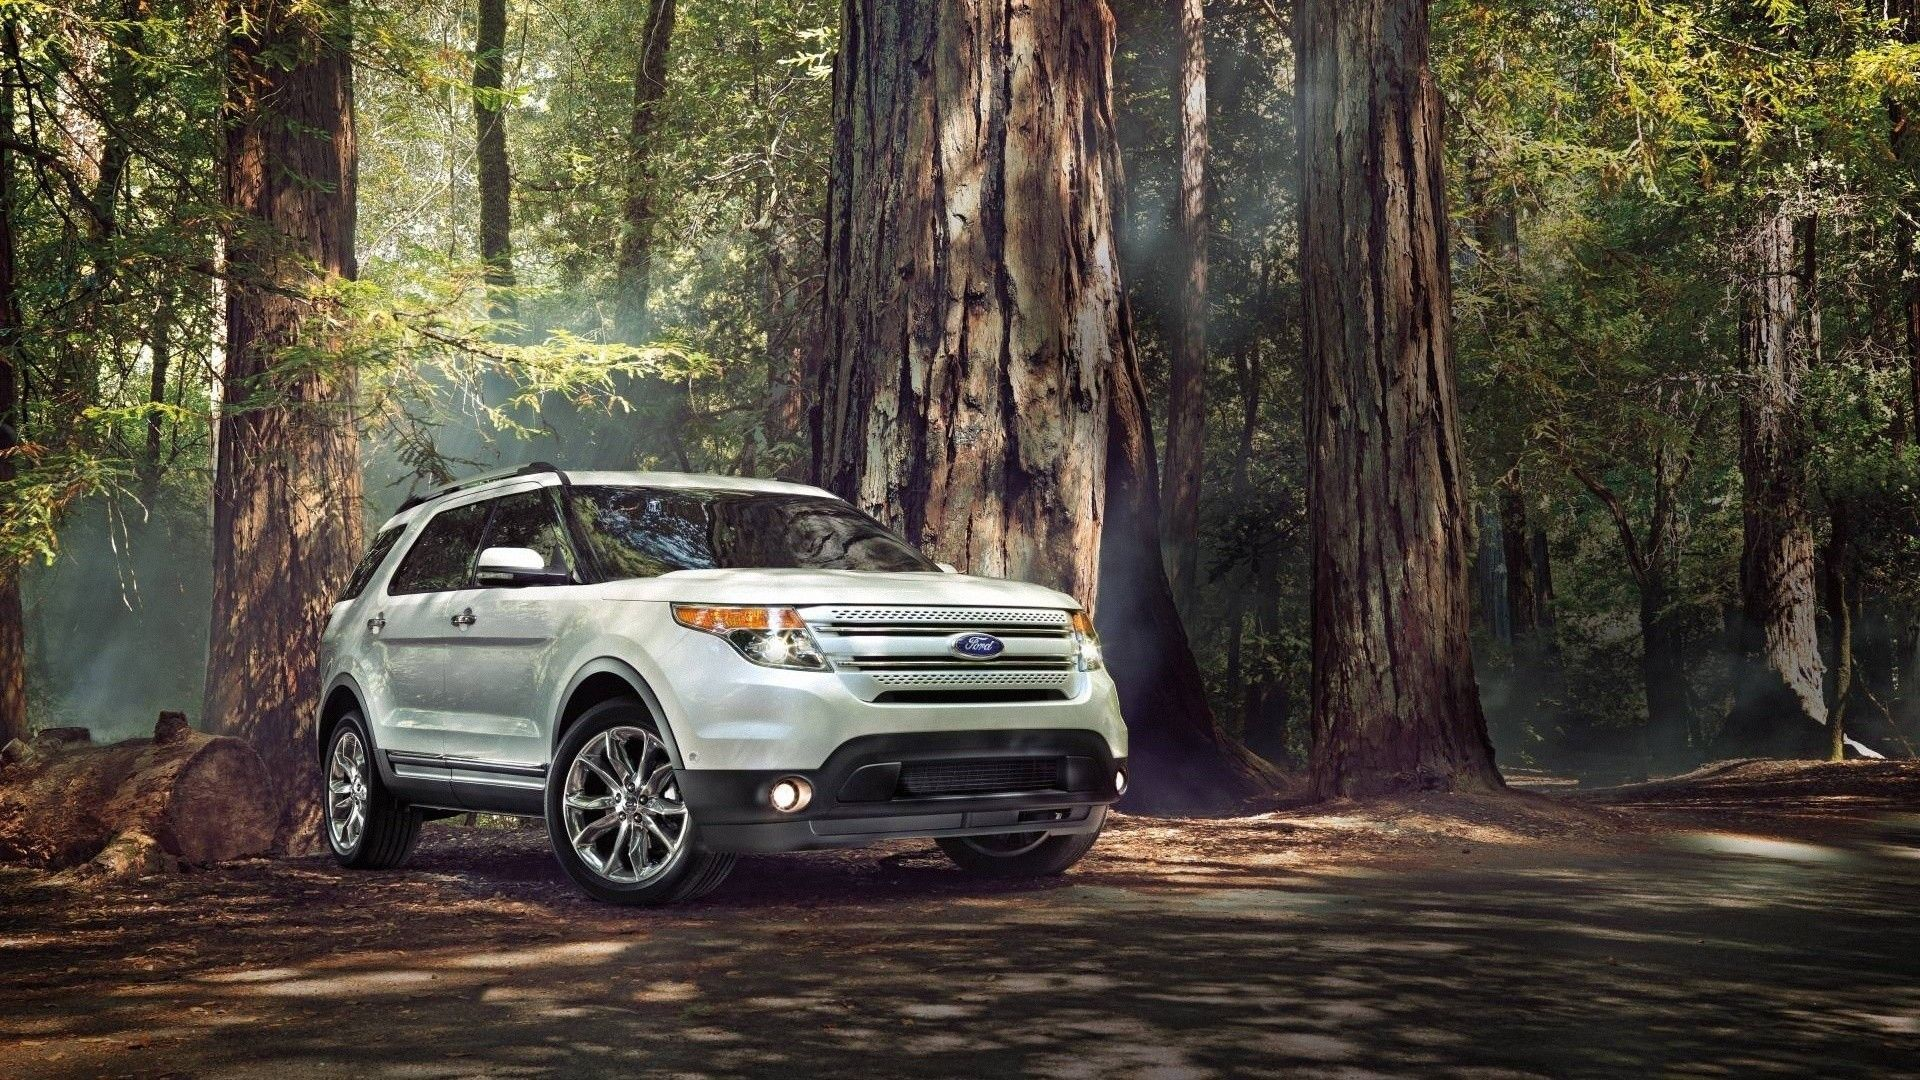 Ford explorer wallpapers for pc tablet cellphone 2014 wallpaper - small